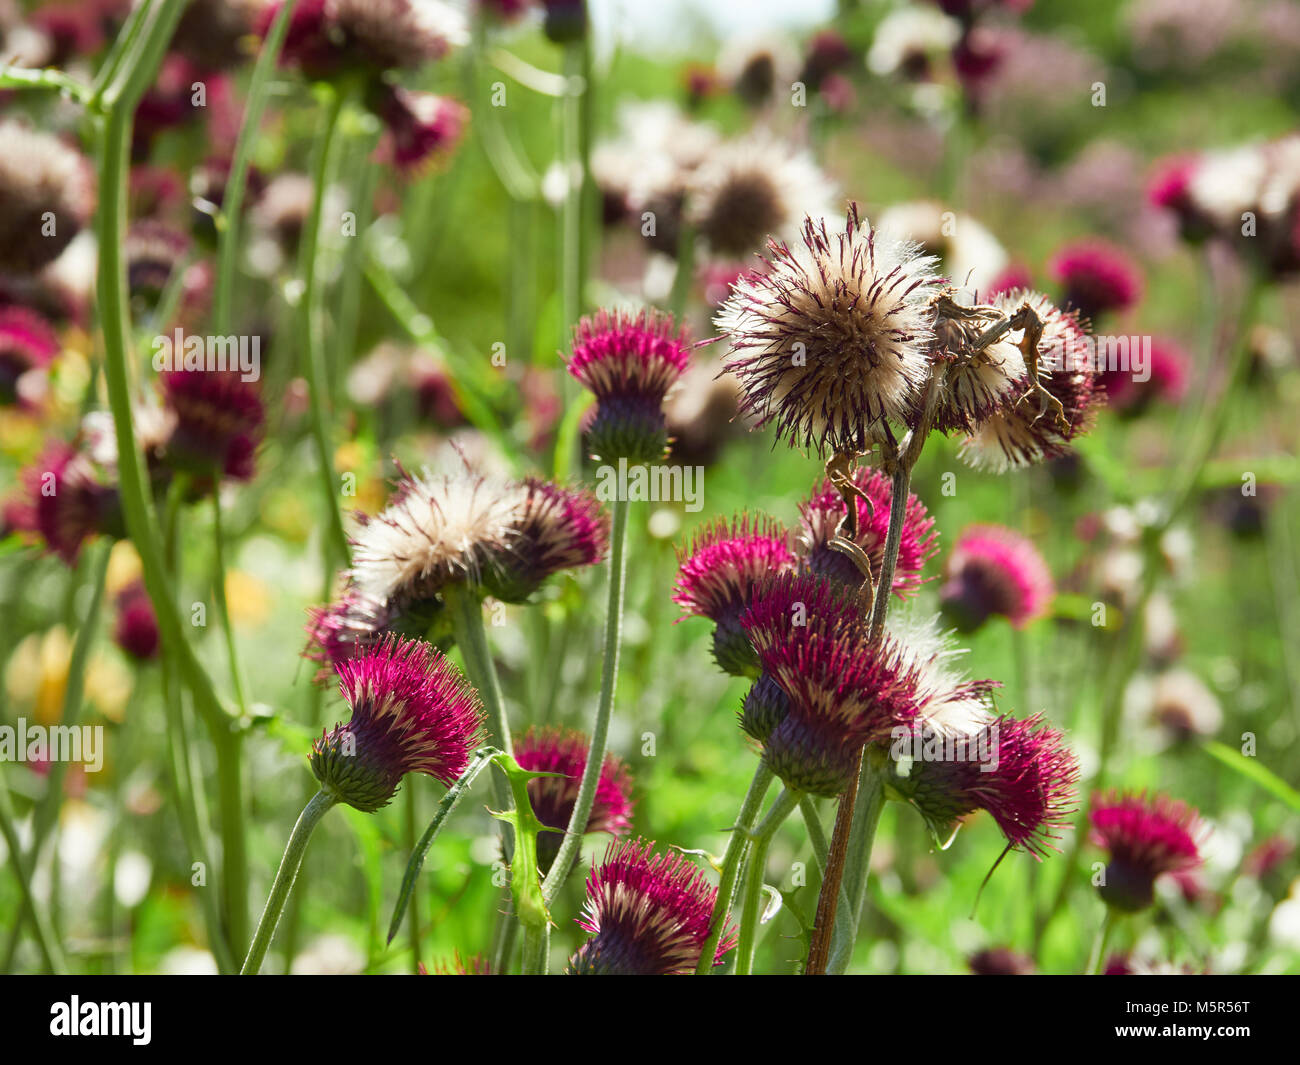 Red Plume Thistle flowers in an English country garden on a sunny summers day. - Stock Image